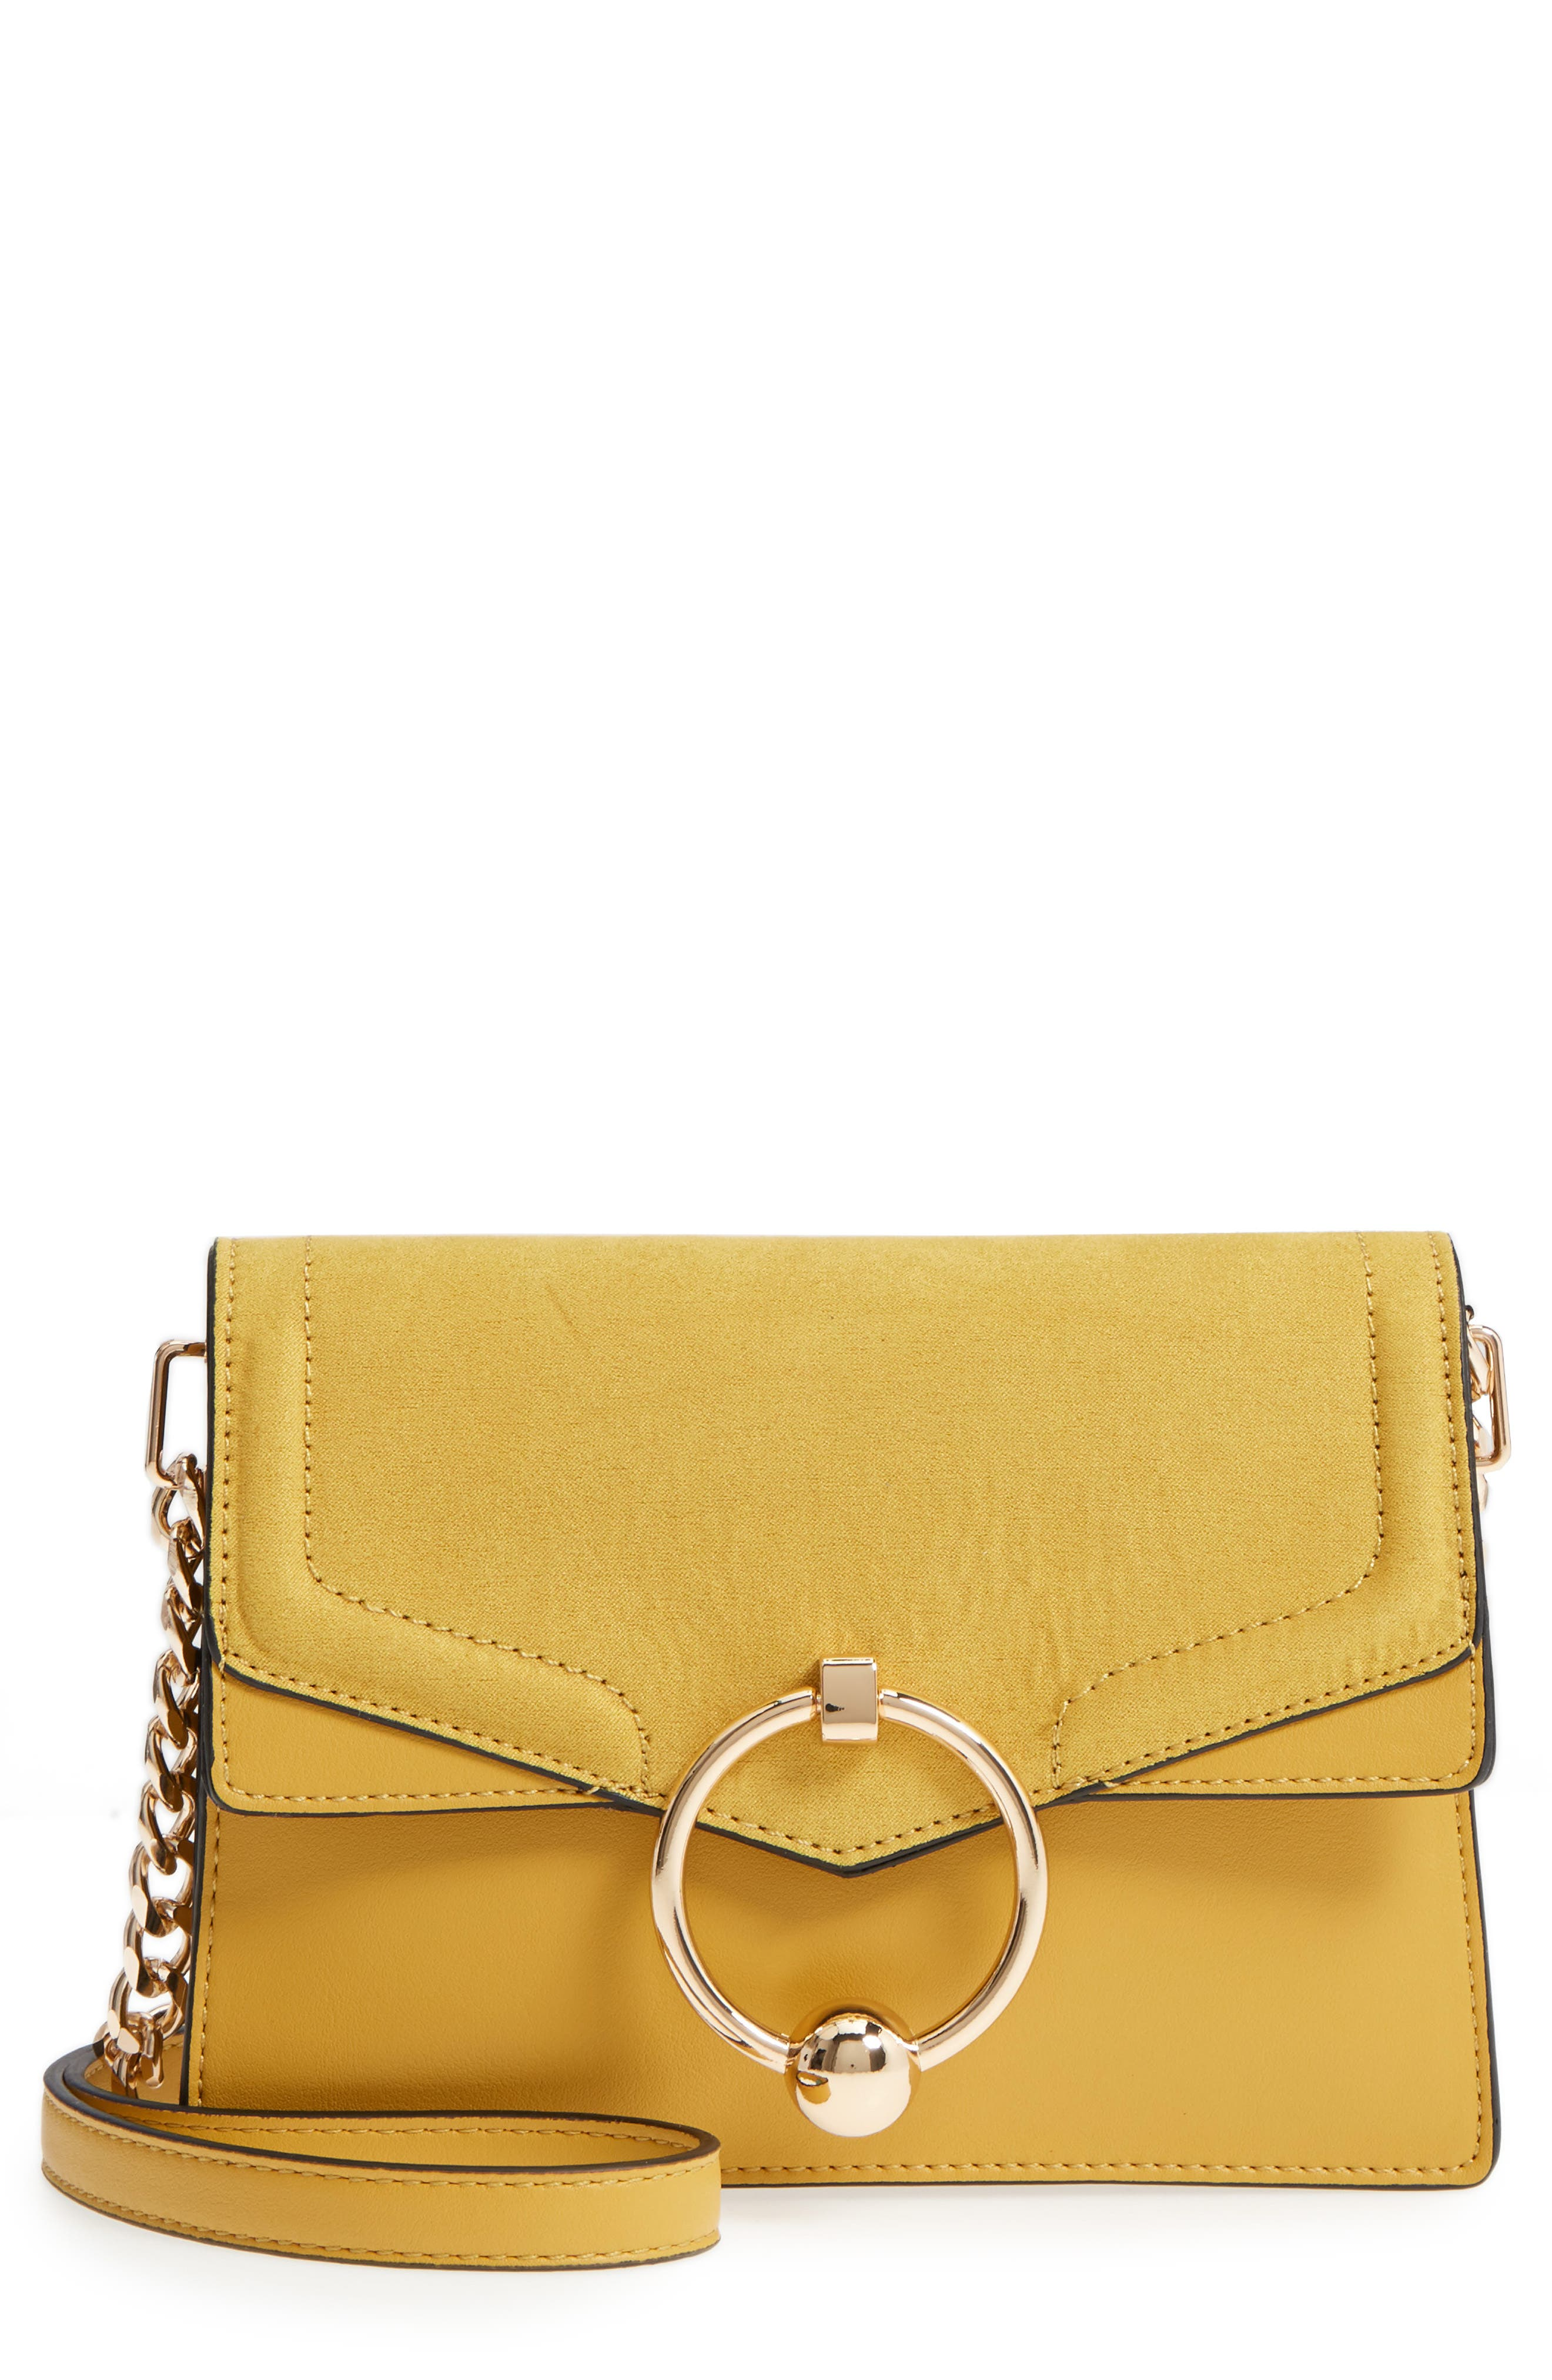 Seline Faux Leather Crossbody Bag,                         Main,                         color, Yellow Multi